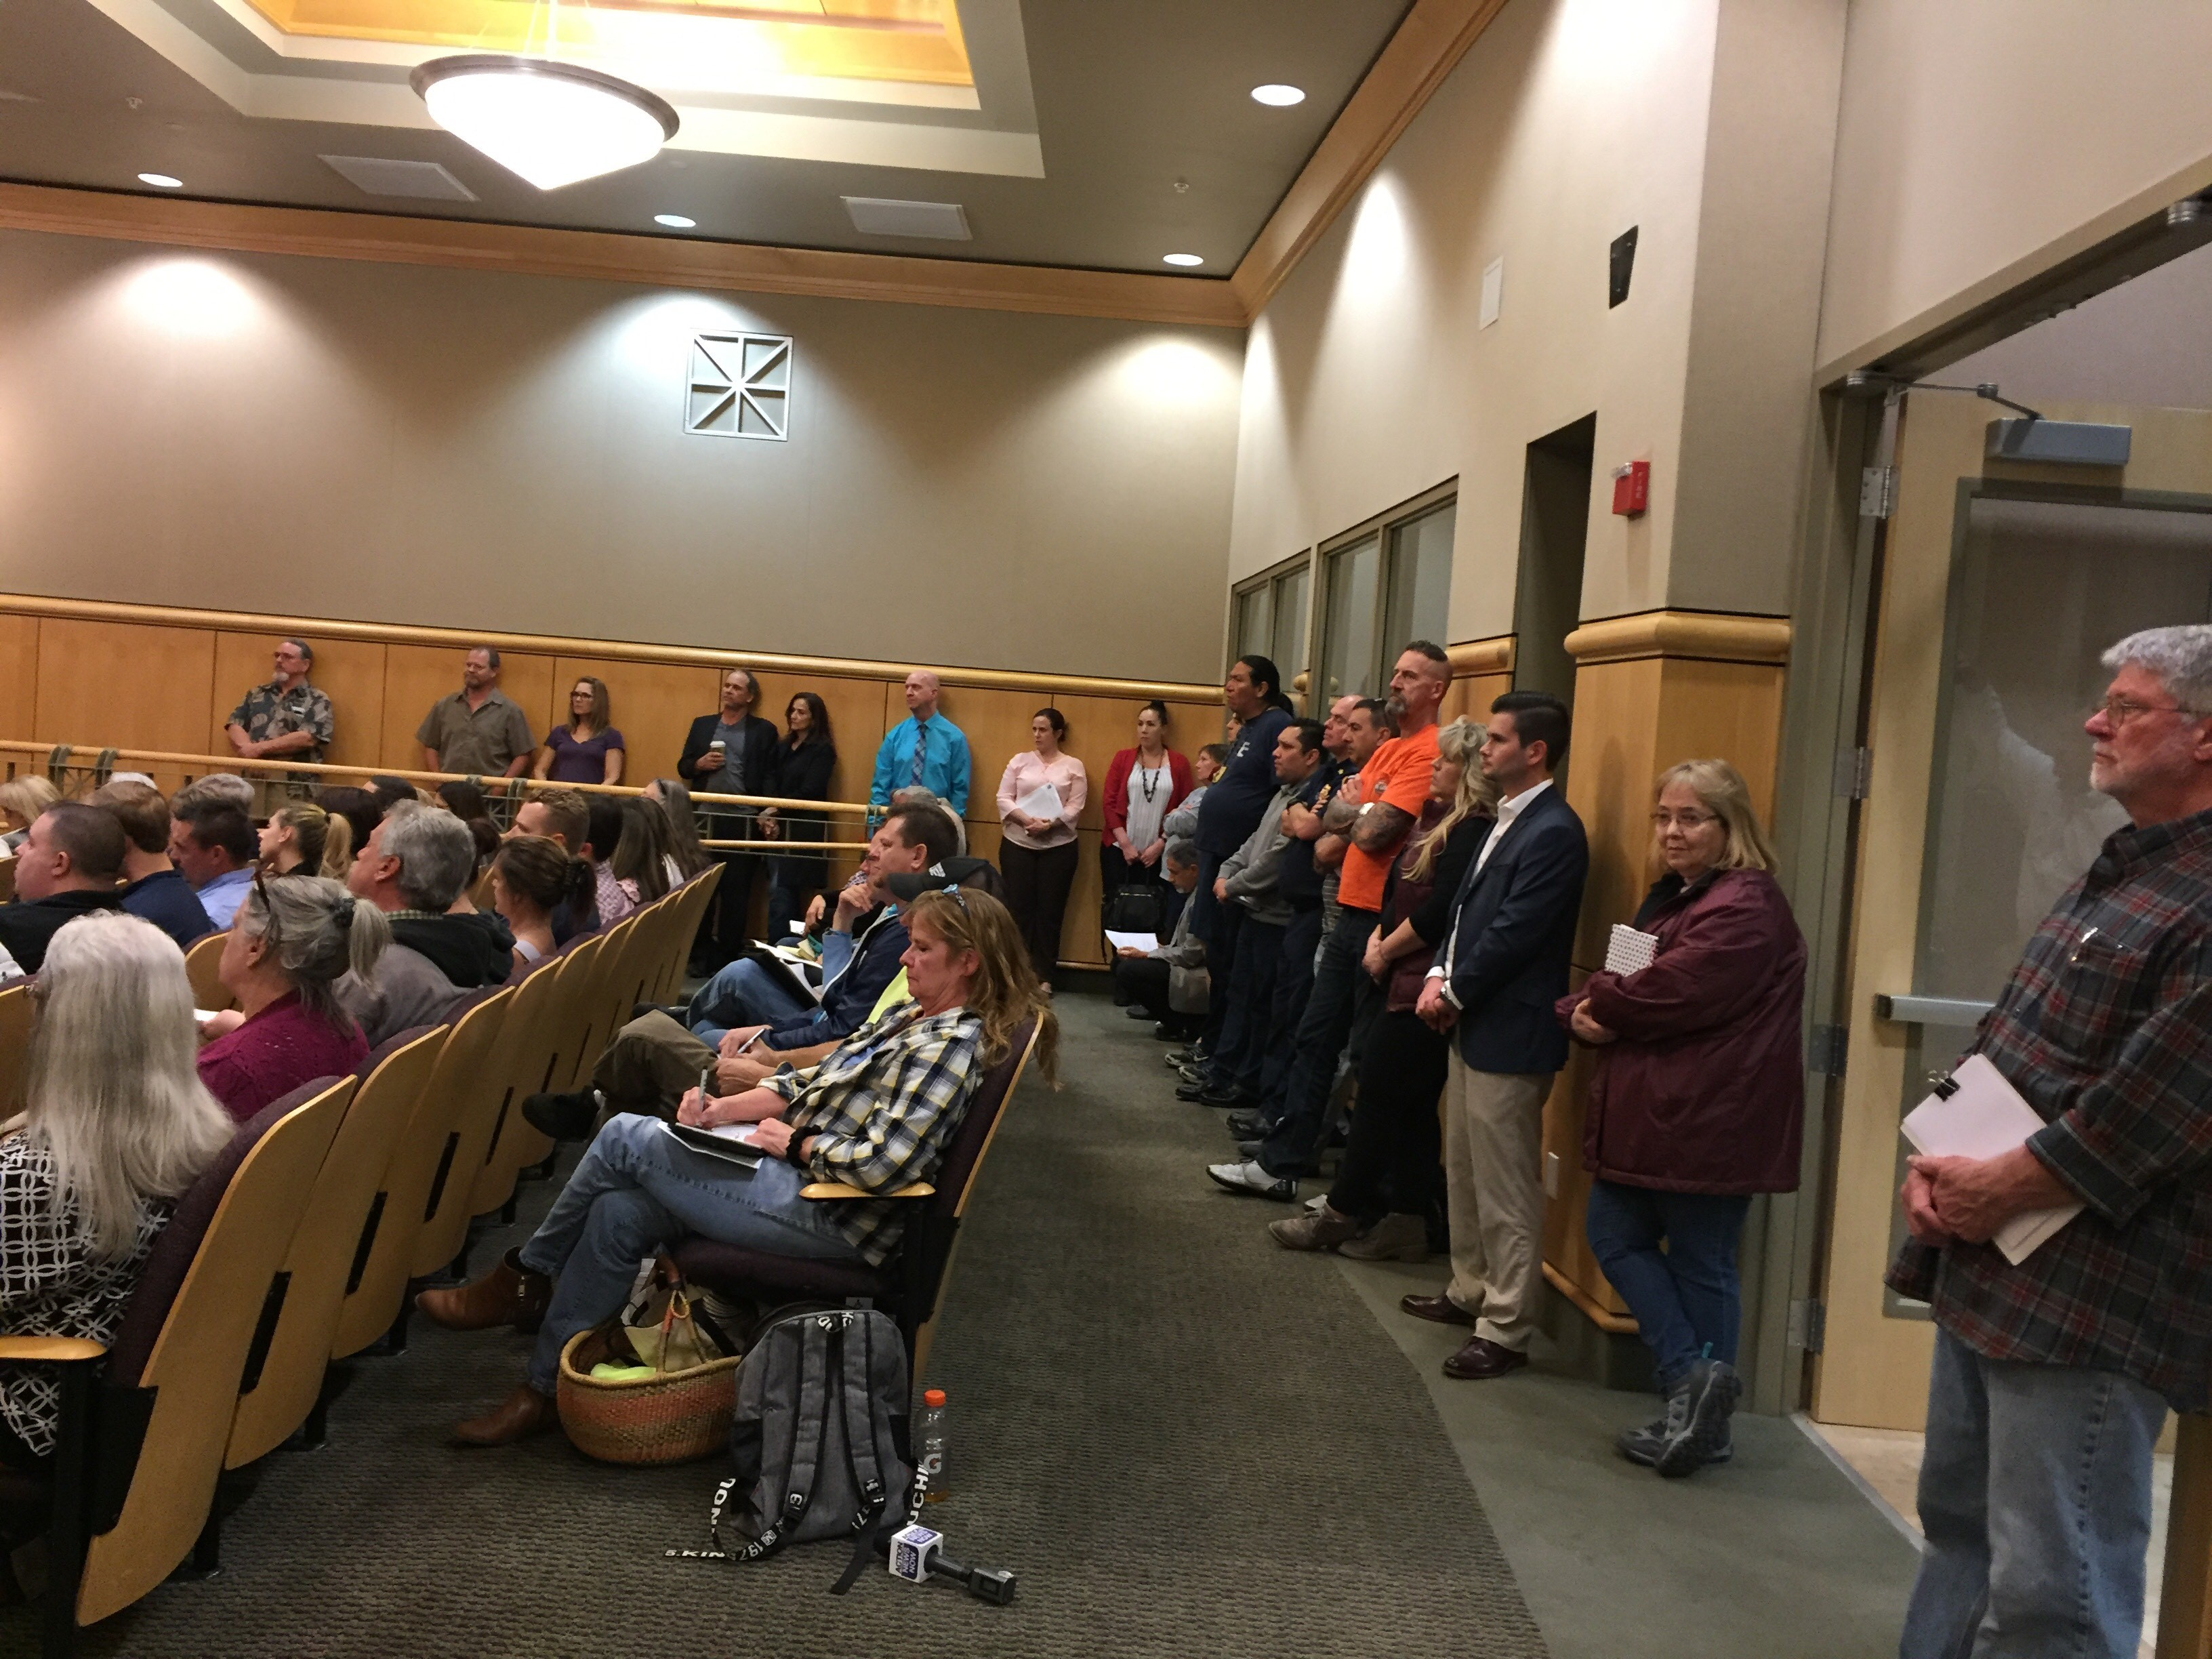 Civic leaders and citizens from Shasta County at the first of several scheduled Shasta County Supervisors Public Safety Forums, February 7, 2018 in Redding.